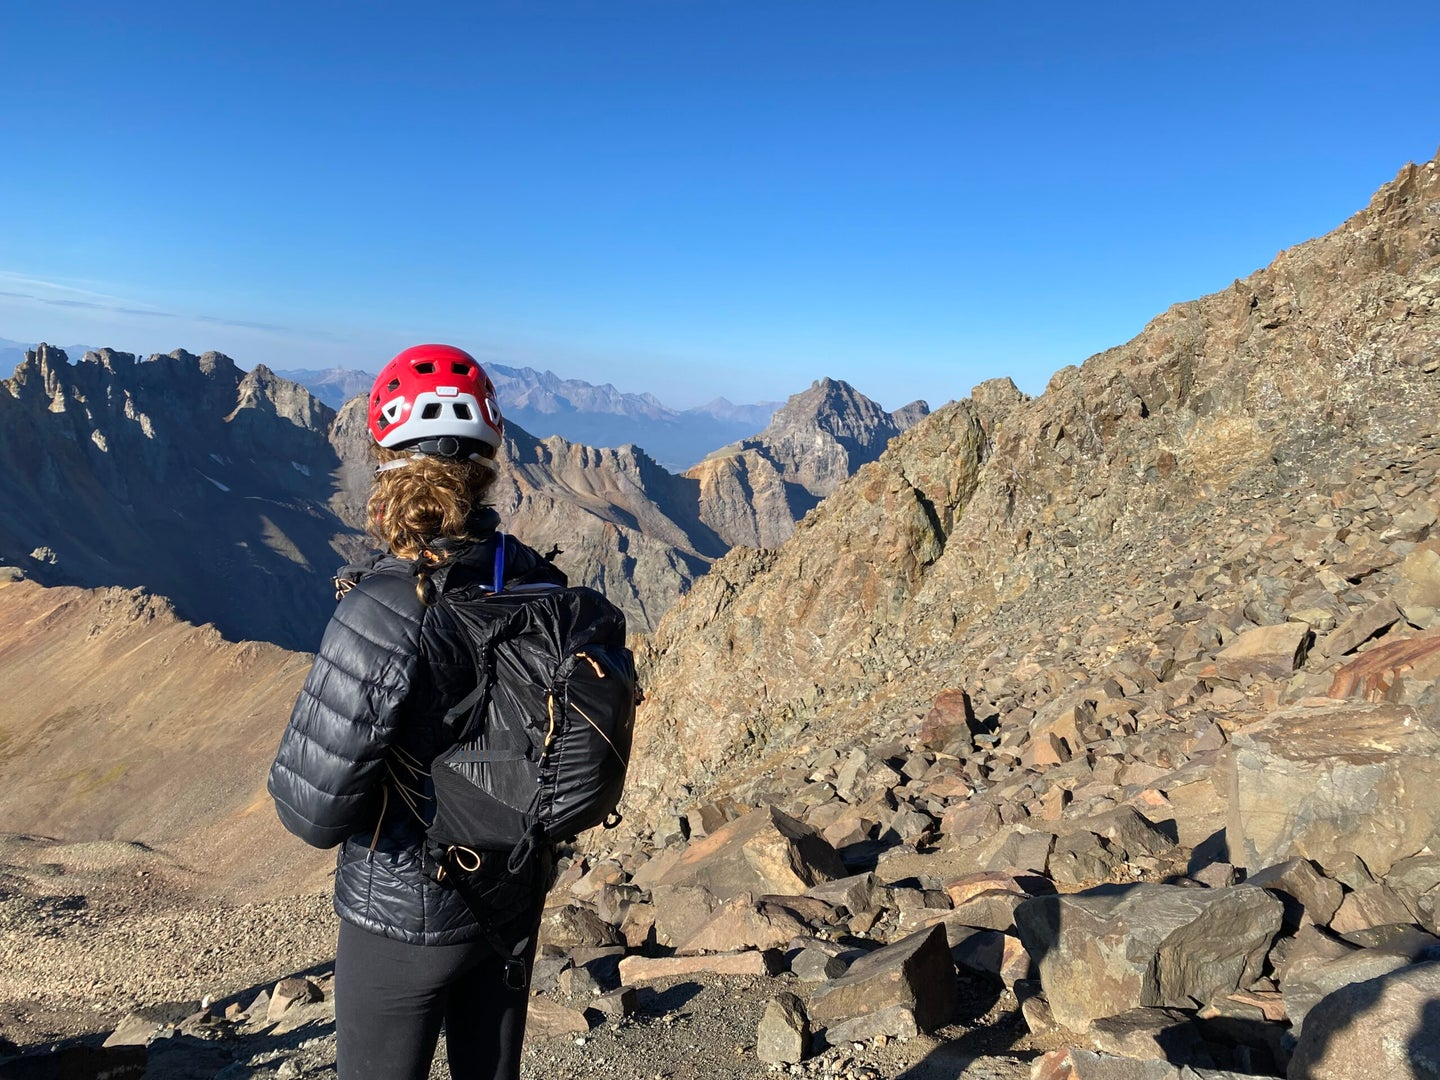 A woman with a black jacket, black backpack, and red climbing helmet looking over mountains